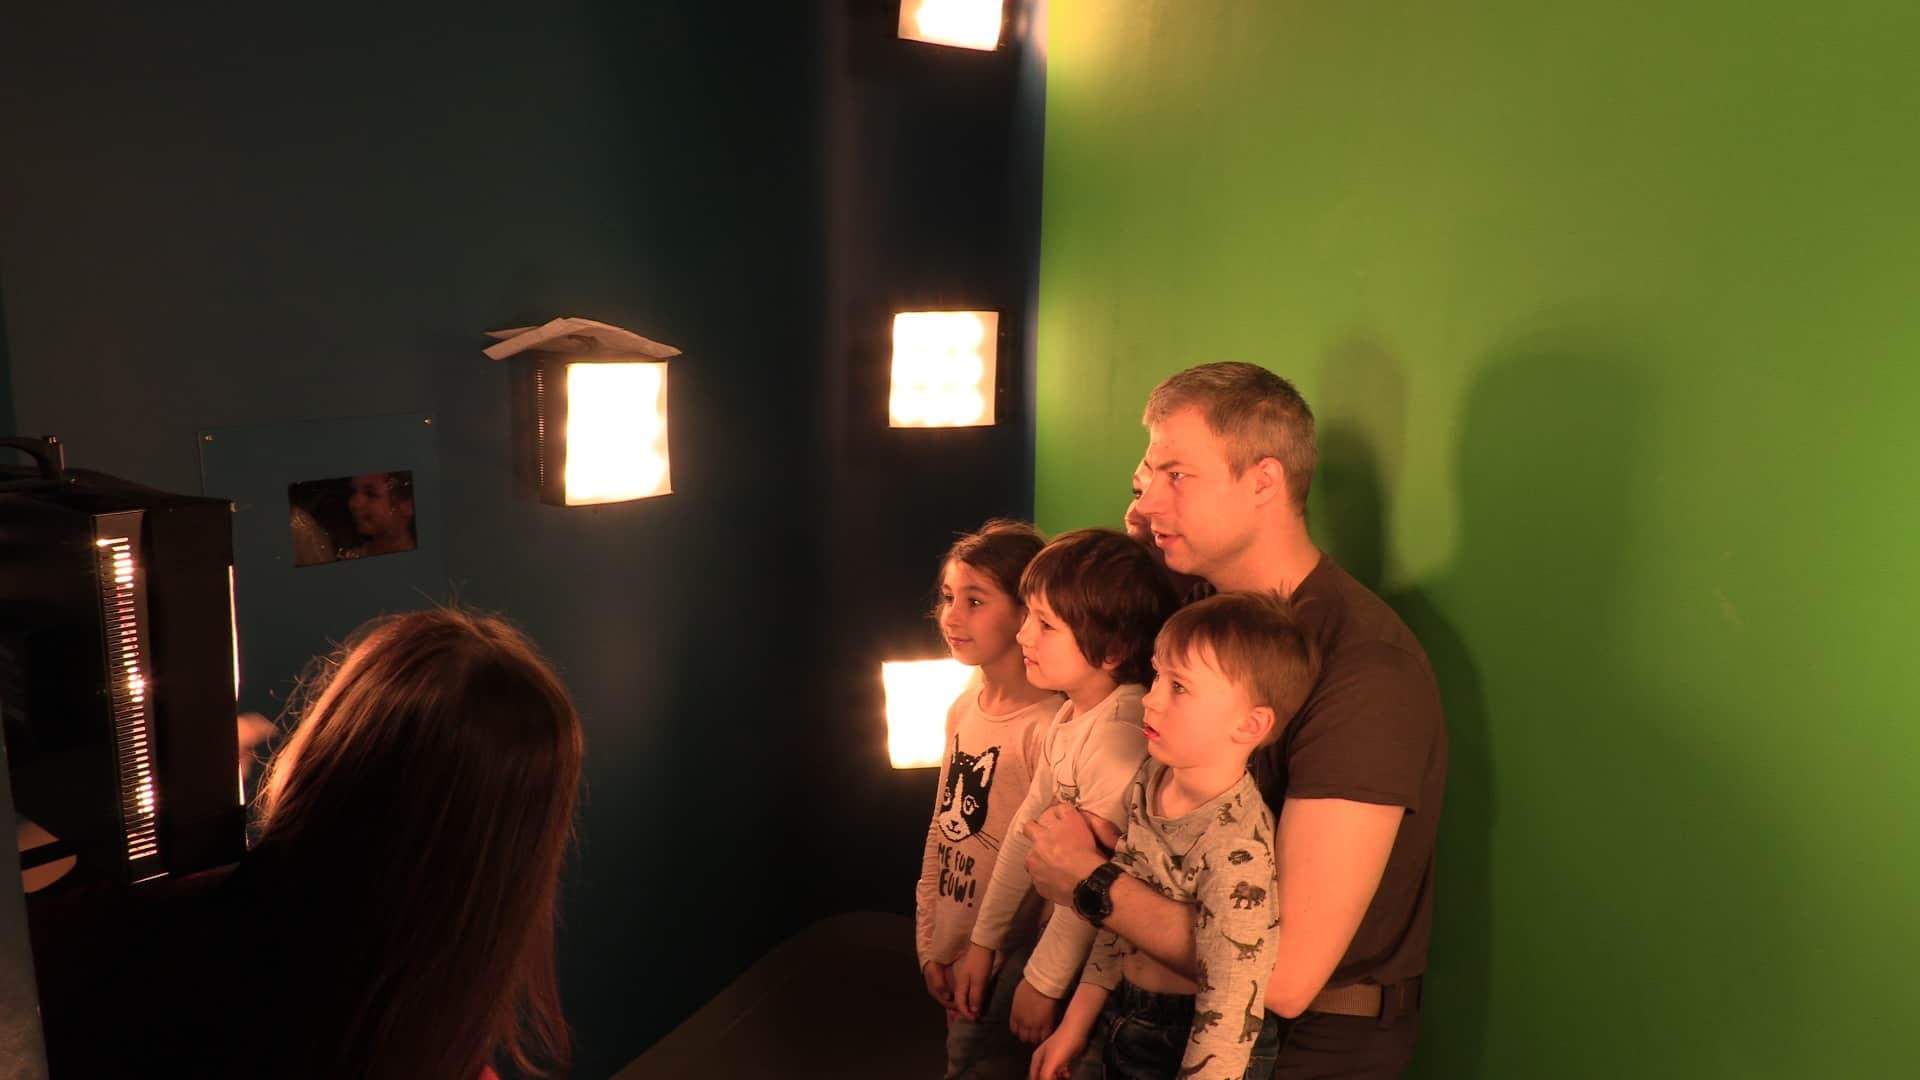 Our photo kiosk looks like a real studio: there is chromakey screen, lighting, two cameras, managing touch display.